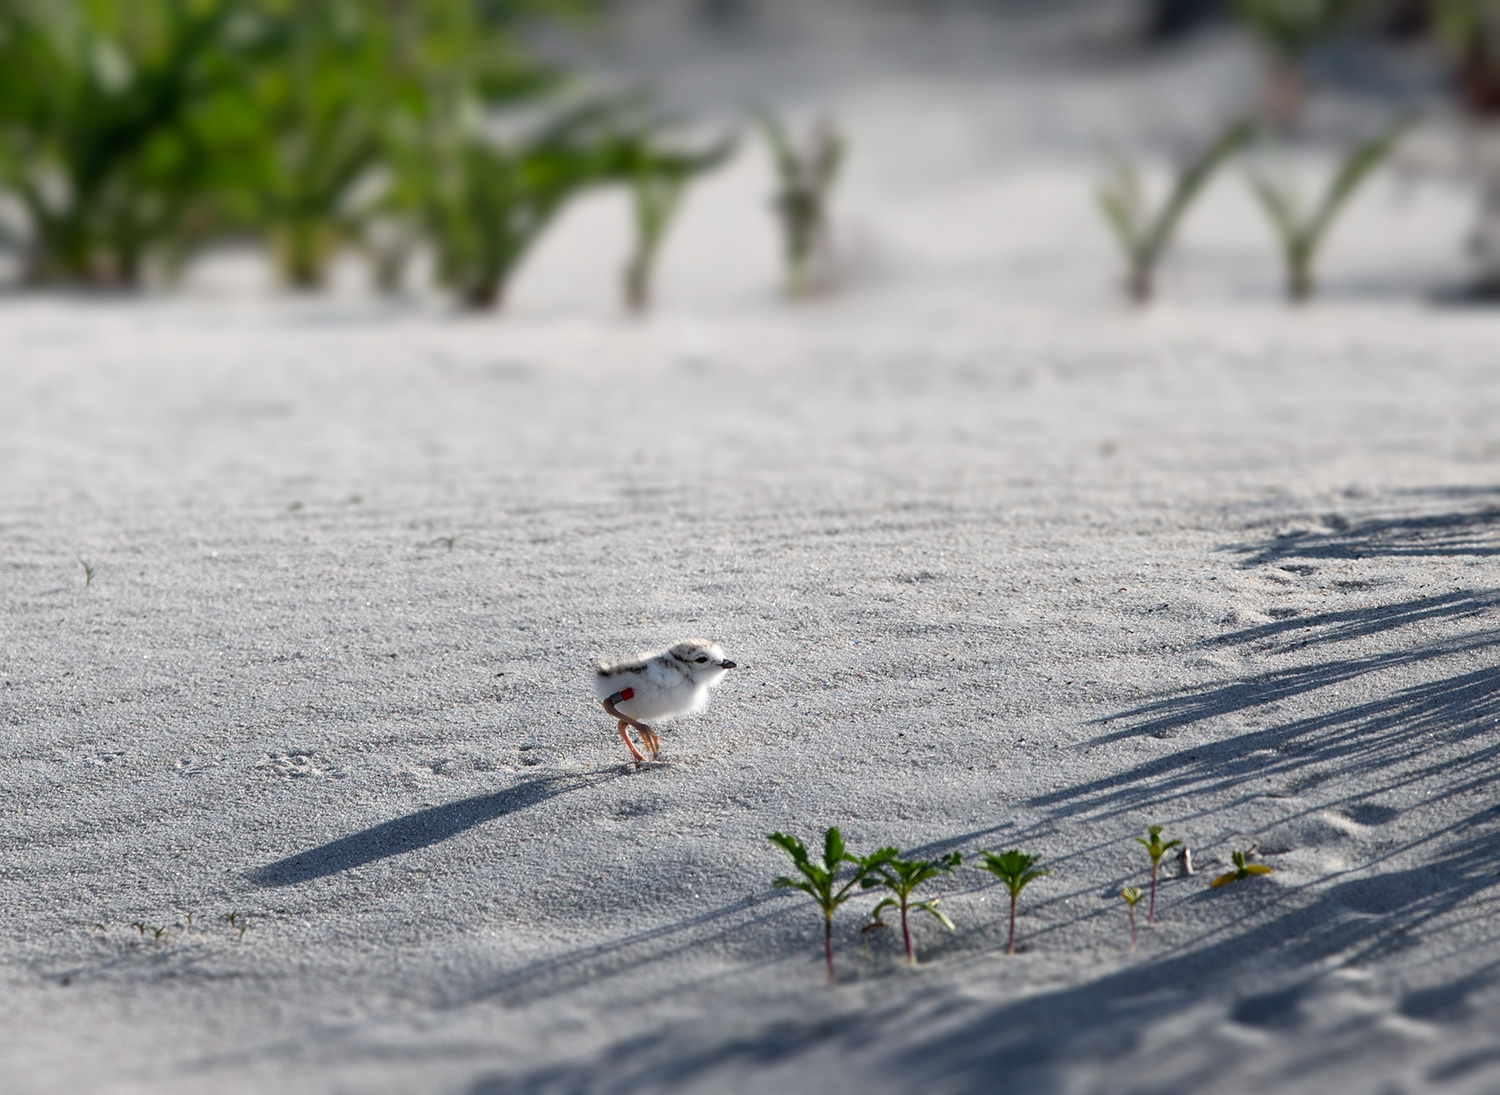 piping-plover-chick-sneaking-through-dune